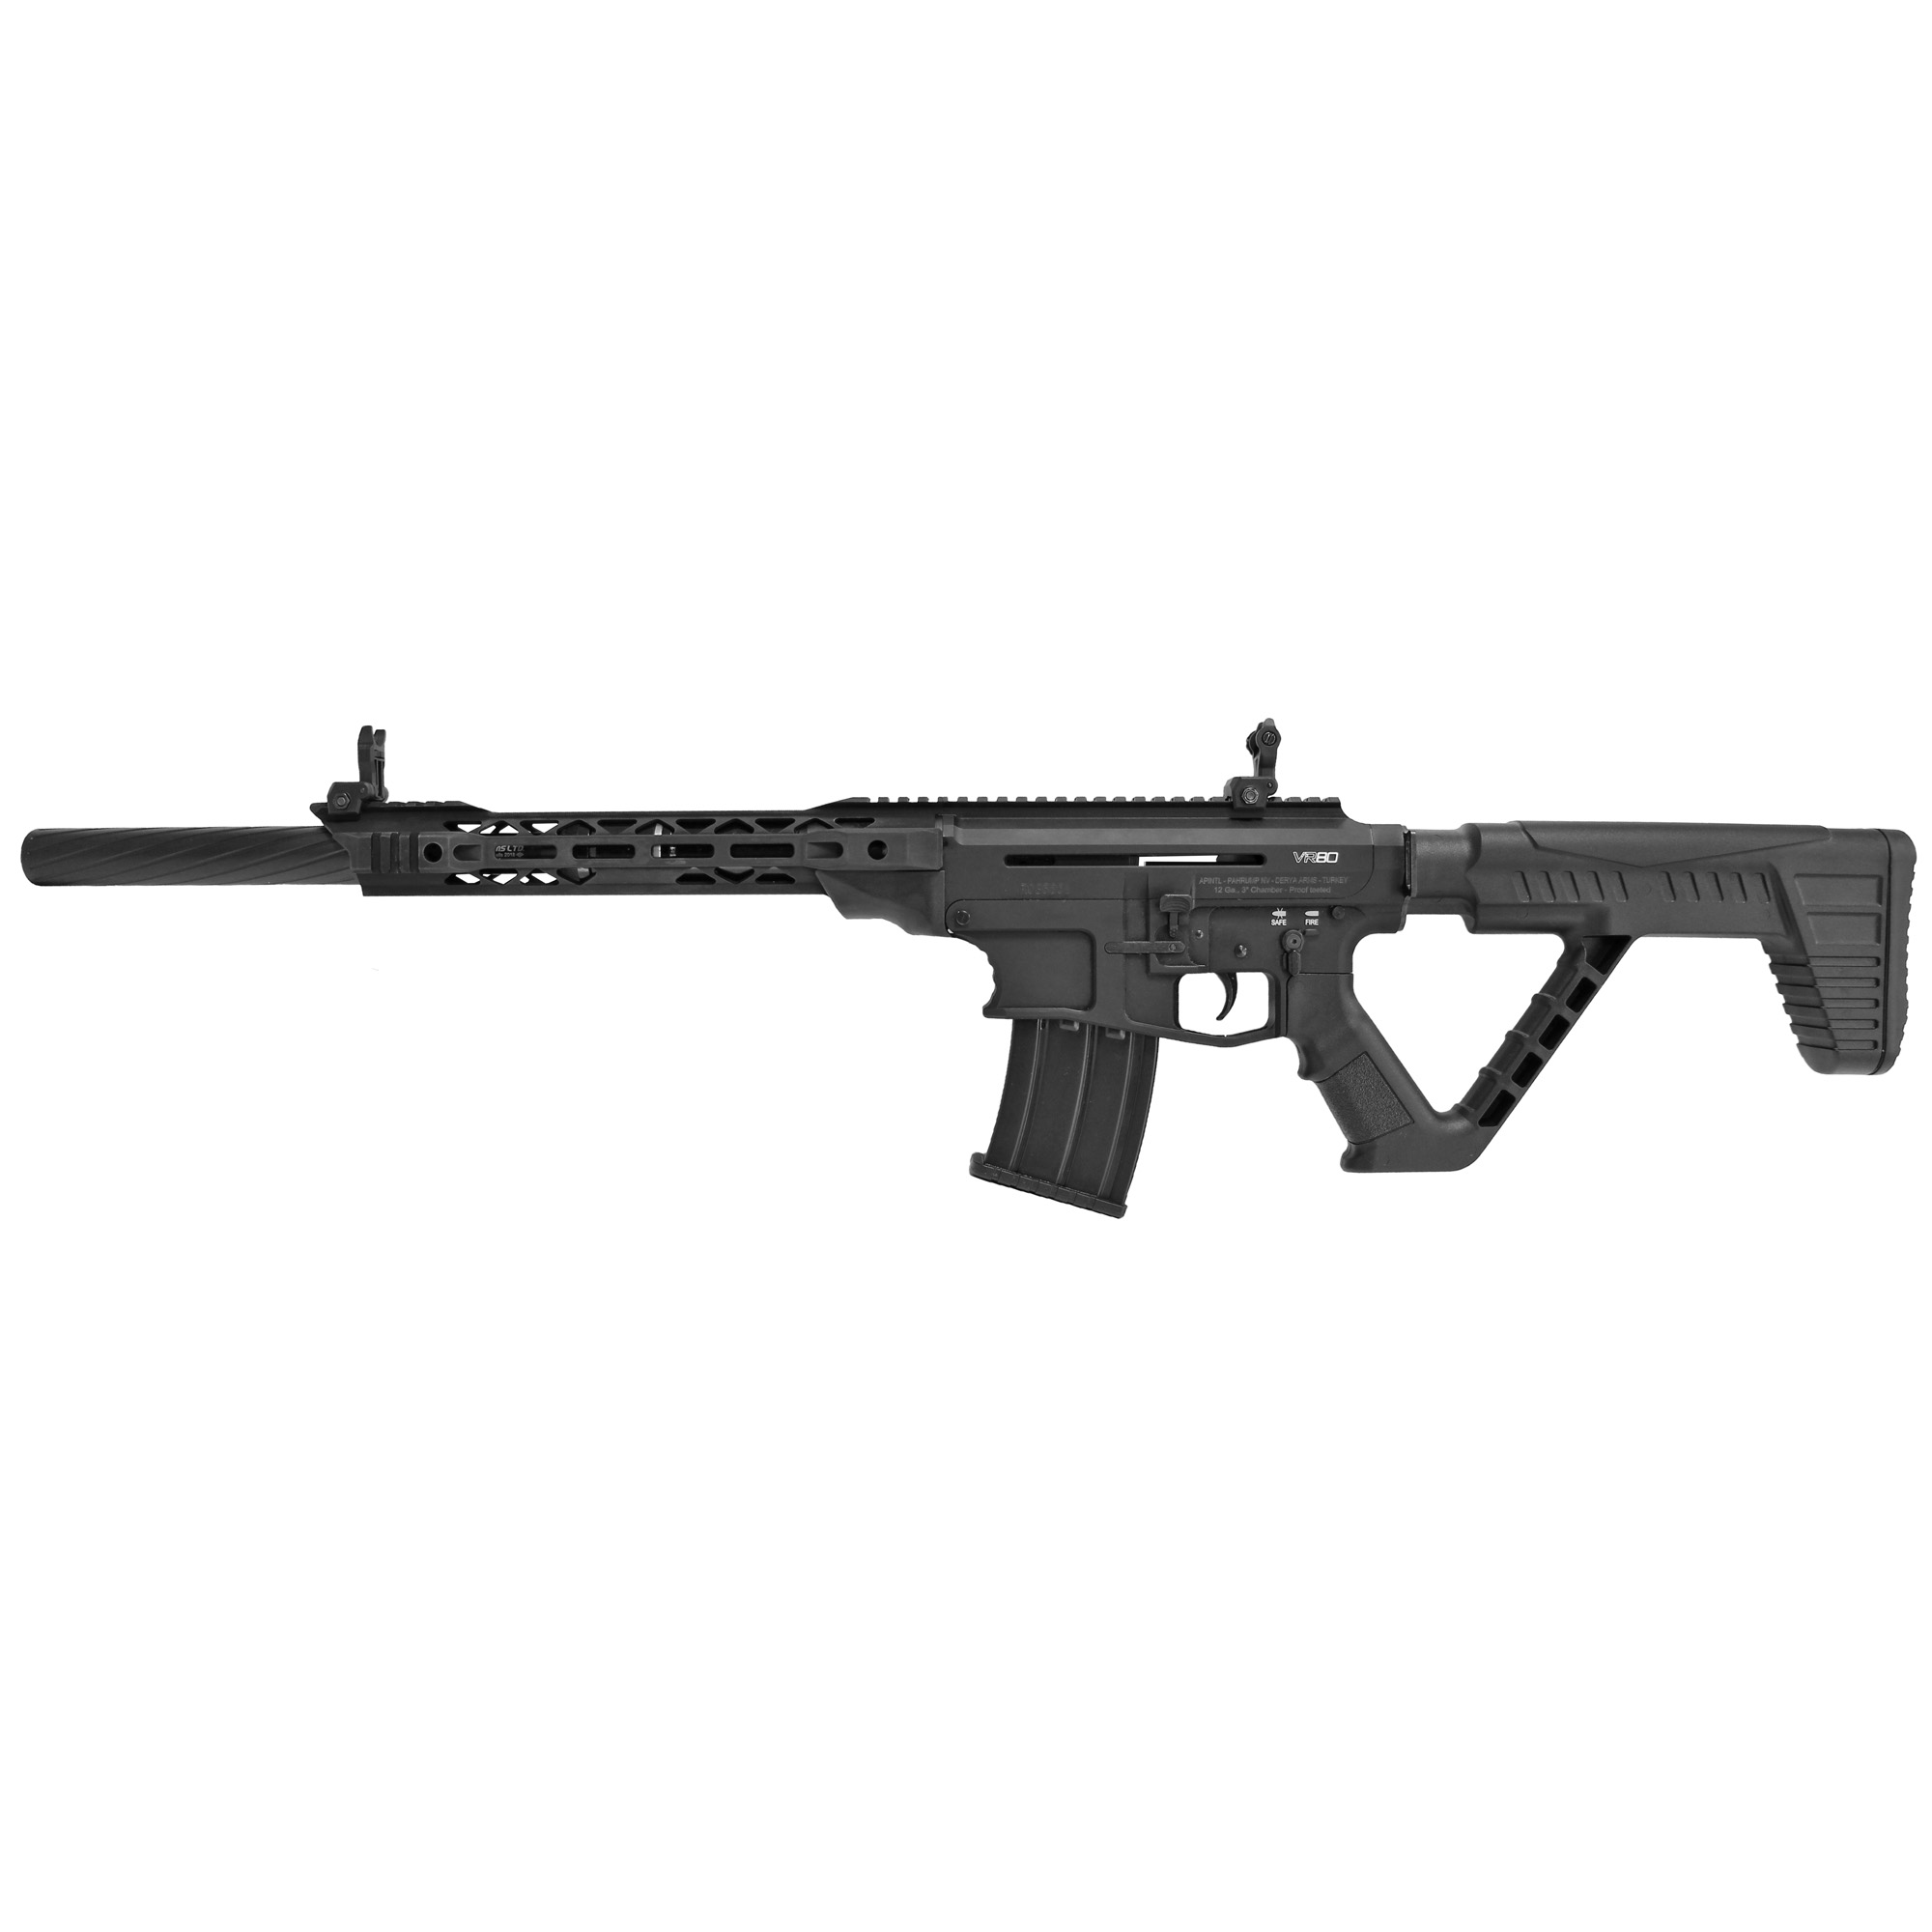 """This gas-operated semi-automatic 12GA shotgun has an upper and lower receiver constructed from 7075 T6 aluminum. The VR80 offers familiar AR-15 ergonomics and controls so you don't need to re-train your mechanics when running 3 gun or out blasting targets. Its magazine fed with 5+1 round capacity of 2 3/4"""" and 3"""" shells. Its capability and versatility make the VR80 a clear leader in semi-automatic mag fed shotguns for a fraction of the price."""